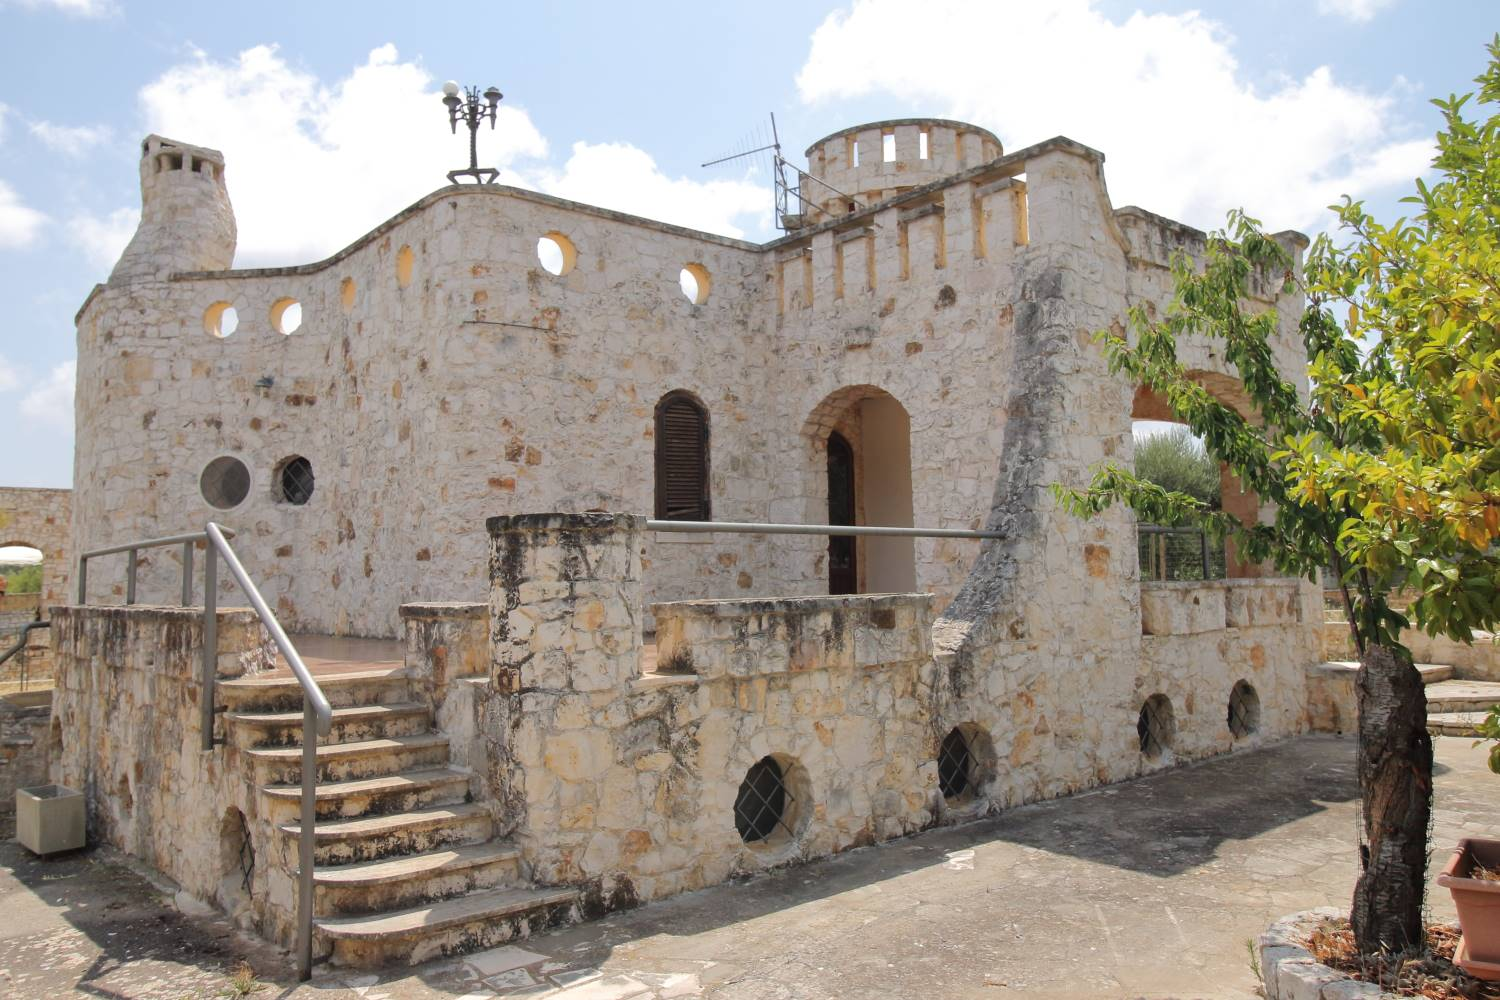 CHIESA NUOVA-TRIGGIANELLO, POLIGNANO A MARE, Villa for sale, Be restored, Heating Individual heating system, Energetic class: G, Epi: 165 kwh/m2 year, placed at Raised, composed by: 8 Rooms, Little